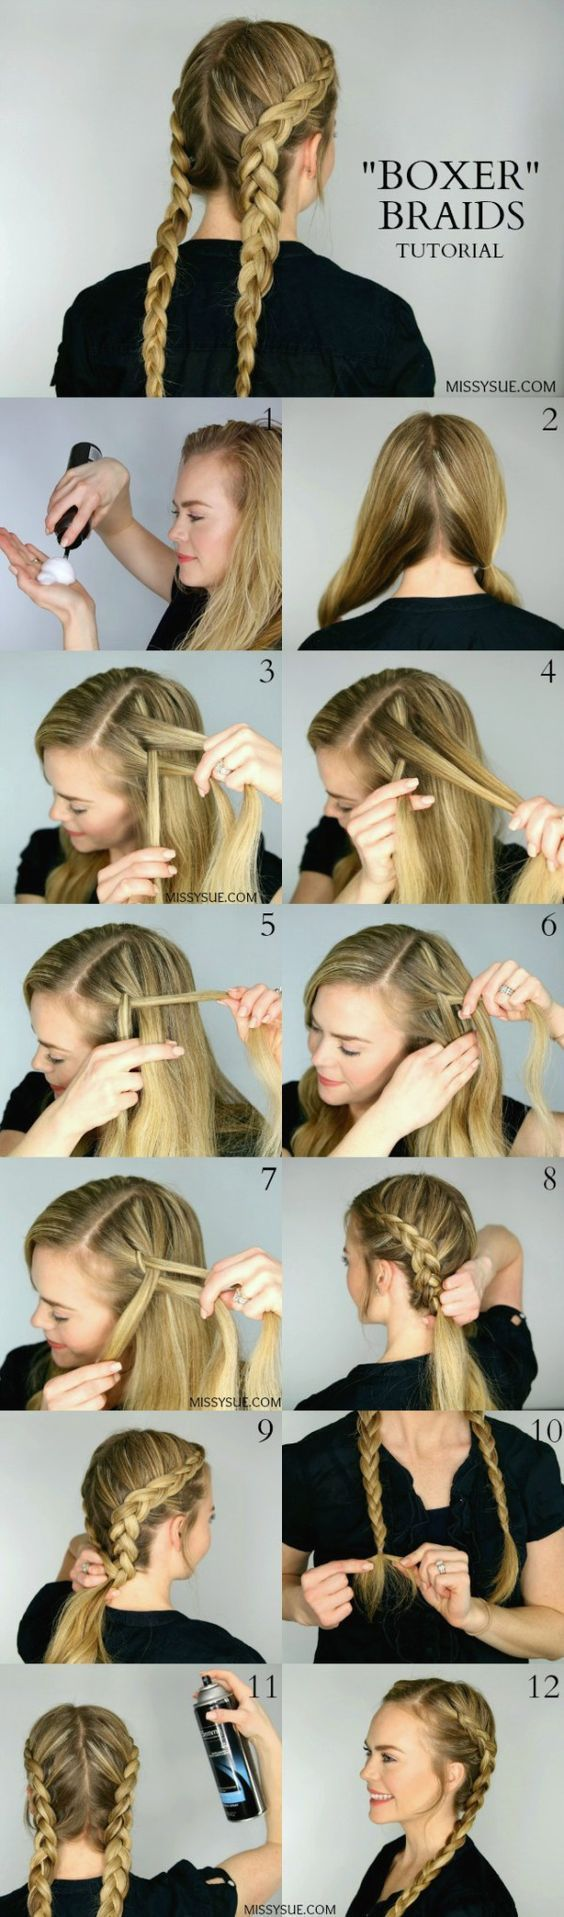 fashionable step by step hairstyle tutorials boxer braids hair